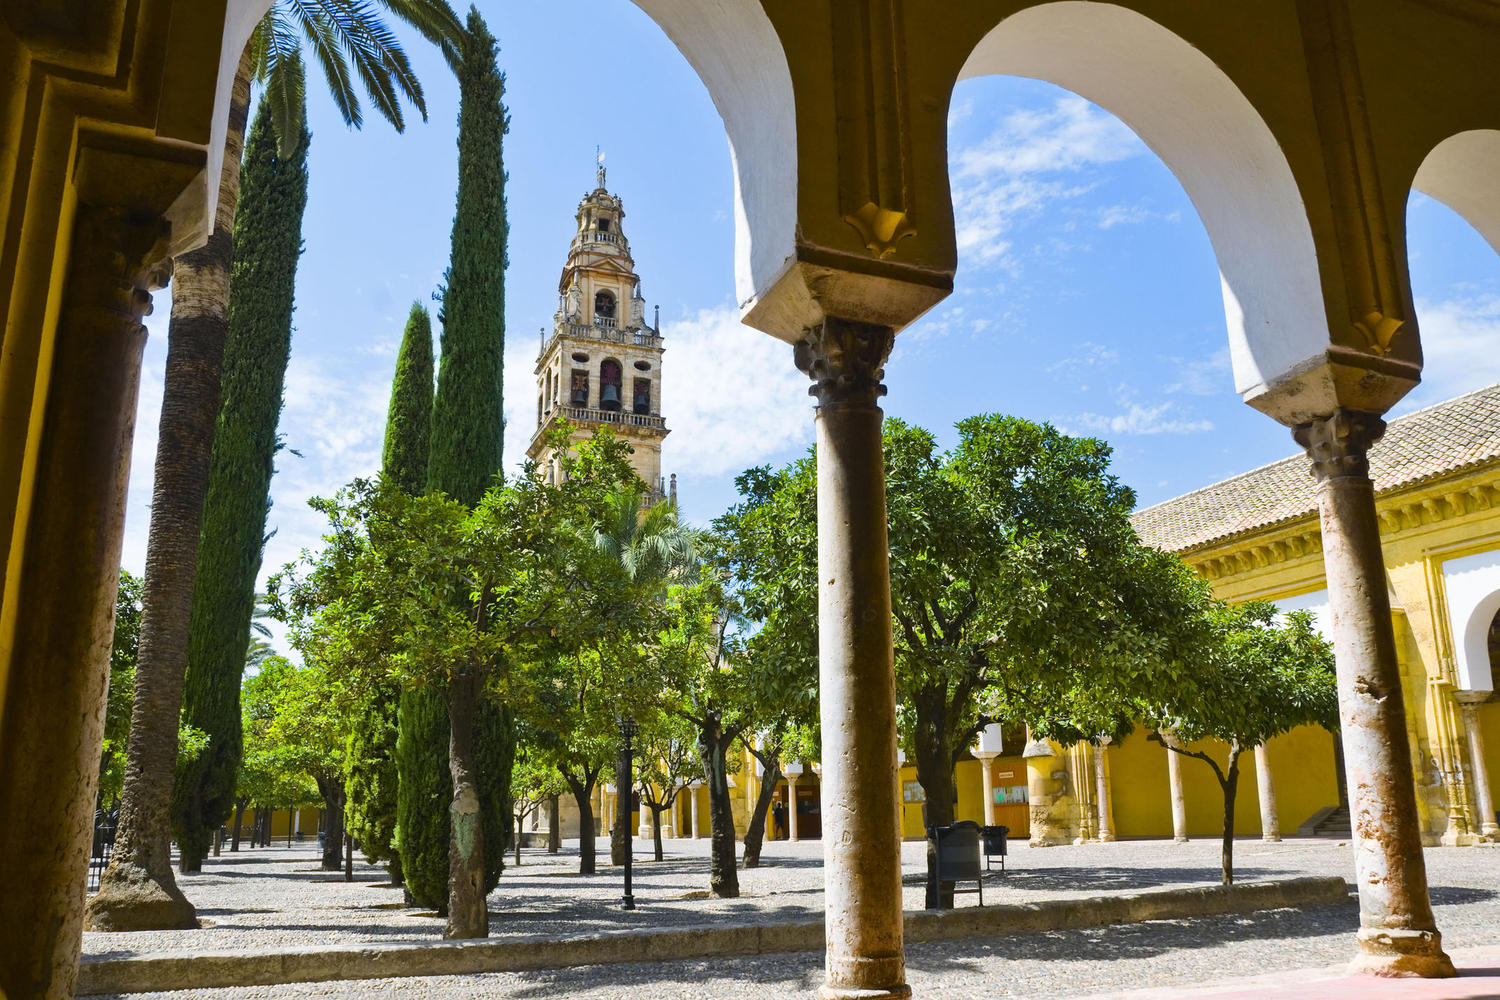 Orange trees in the couryard of the Córdoba mosque.